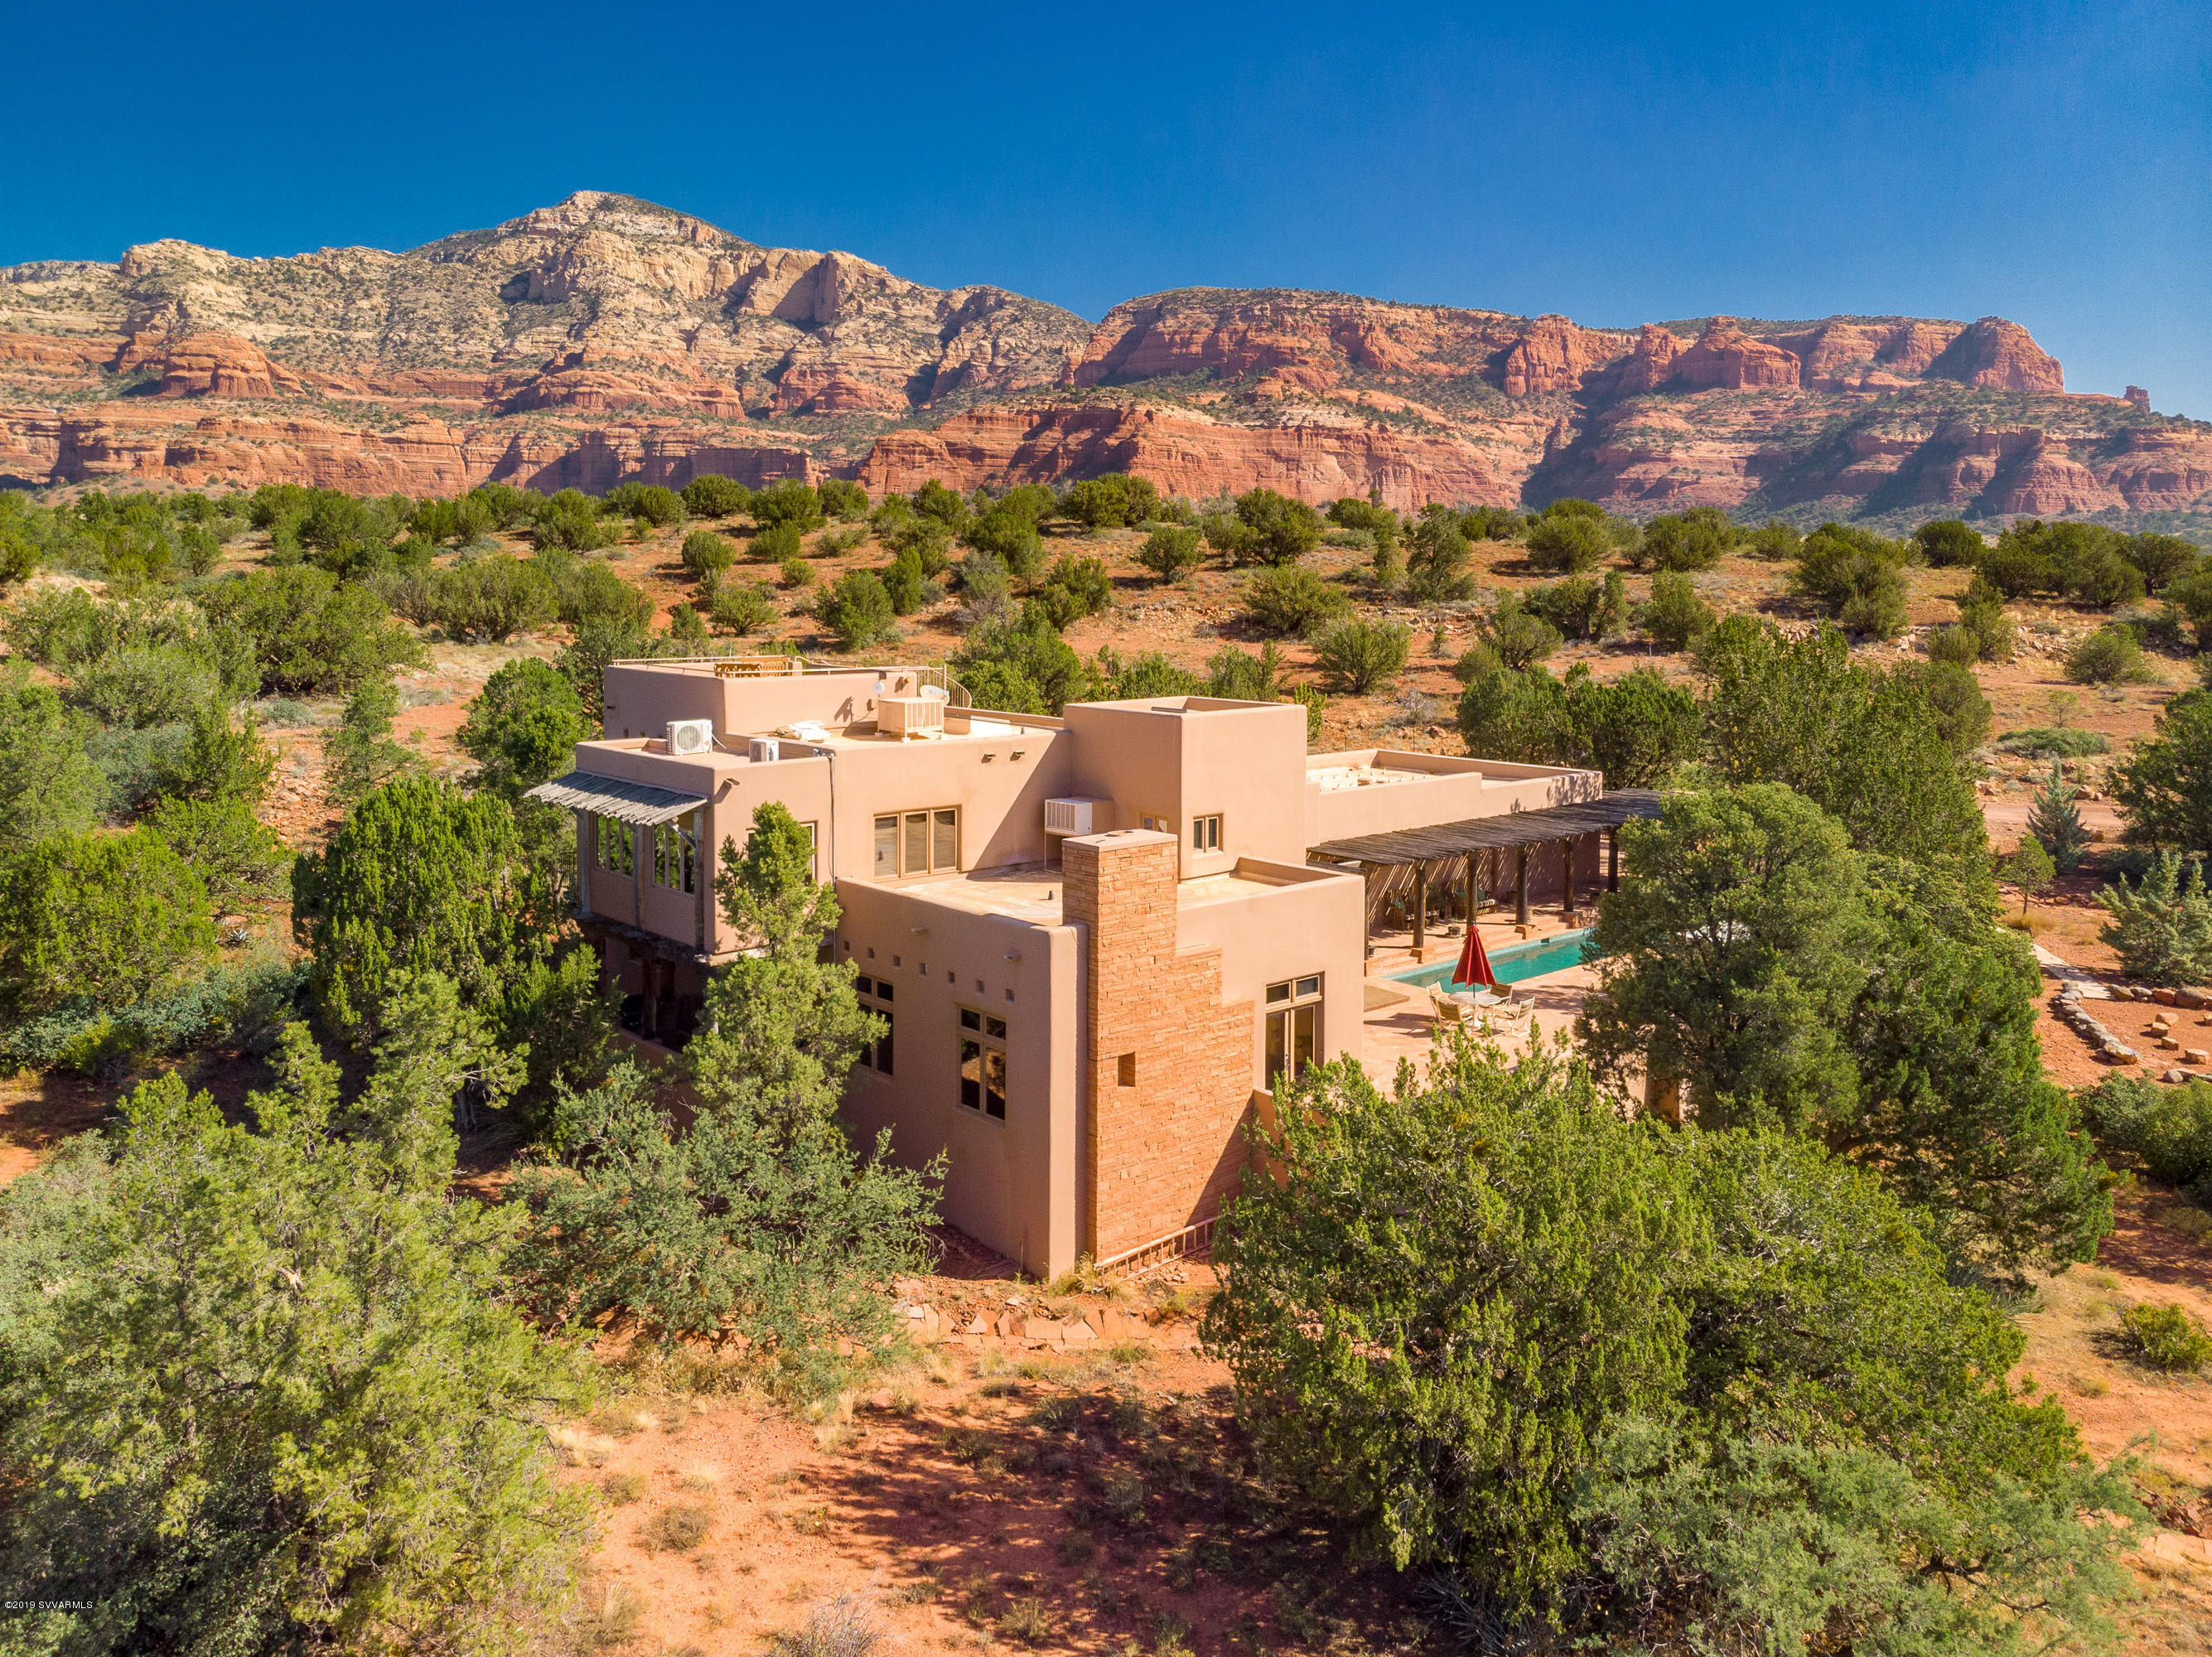 140  Bear Mountain Rd, Sedona, Arizona